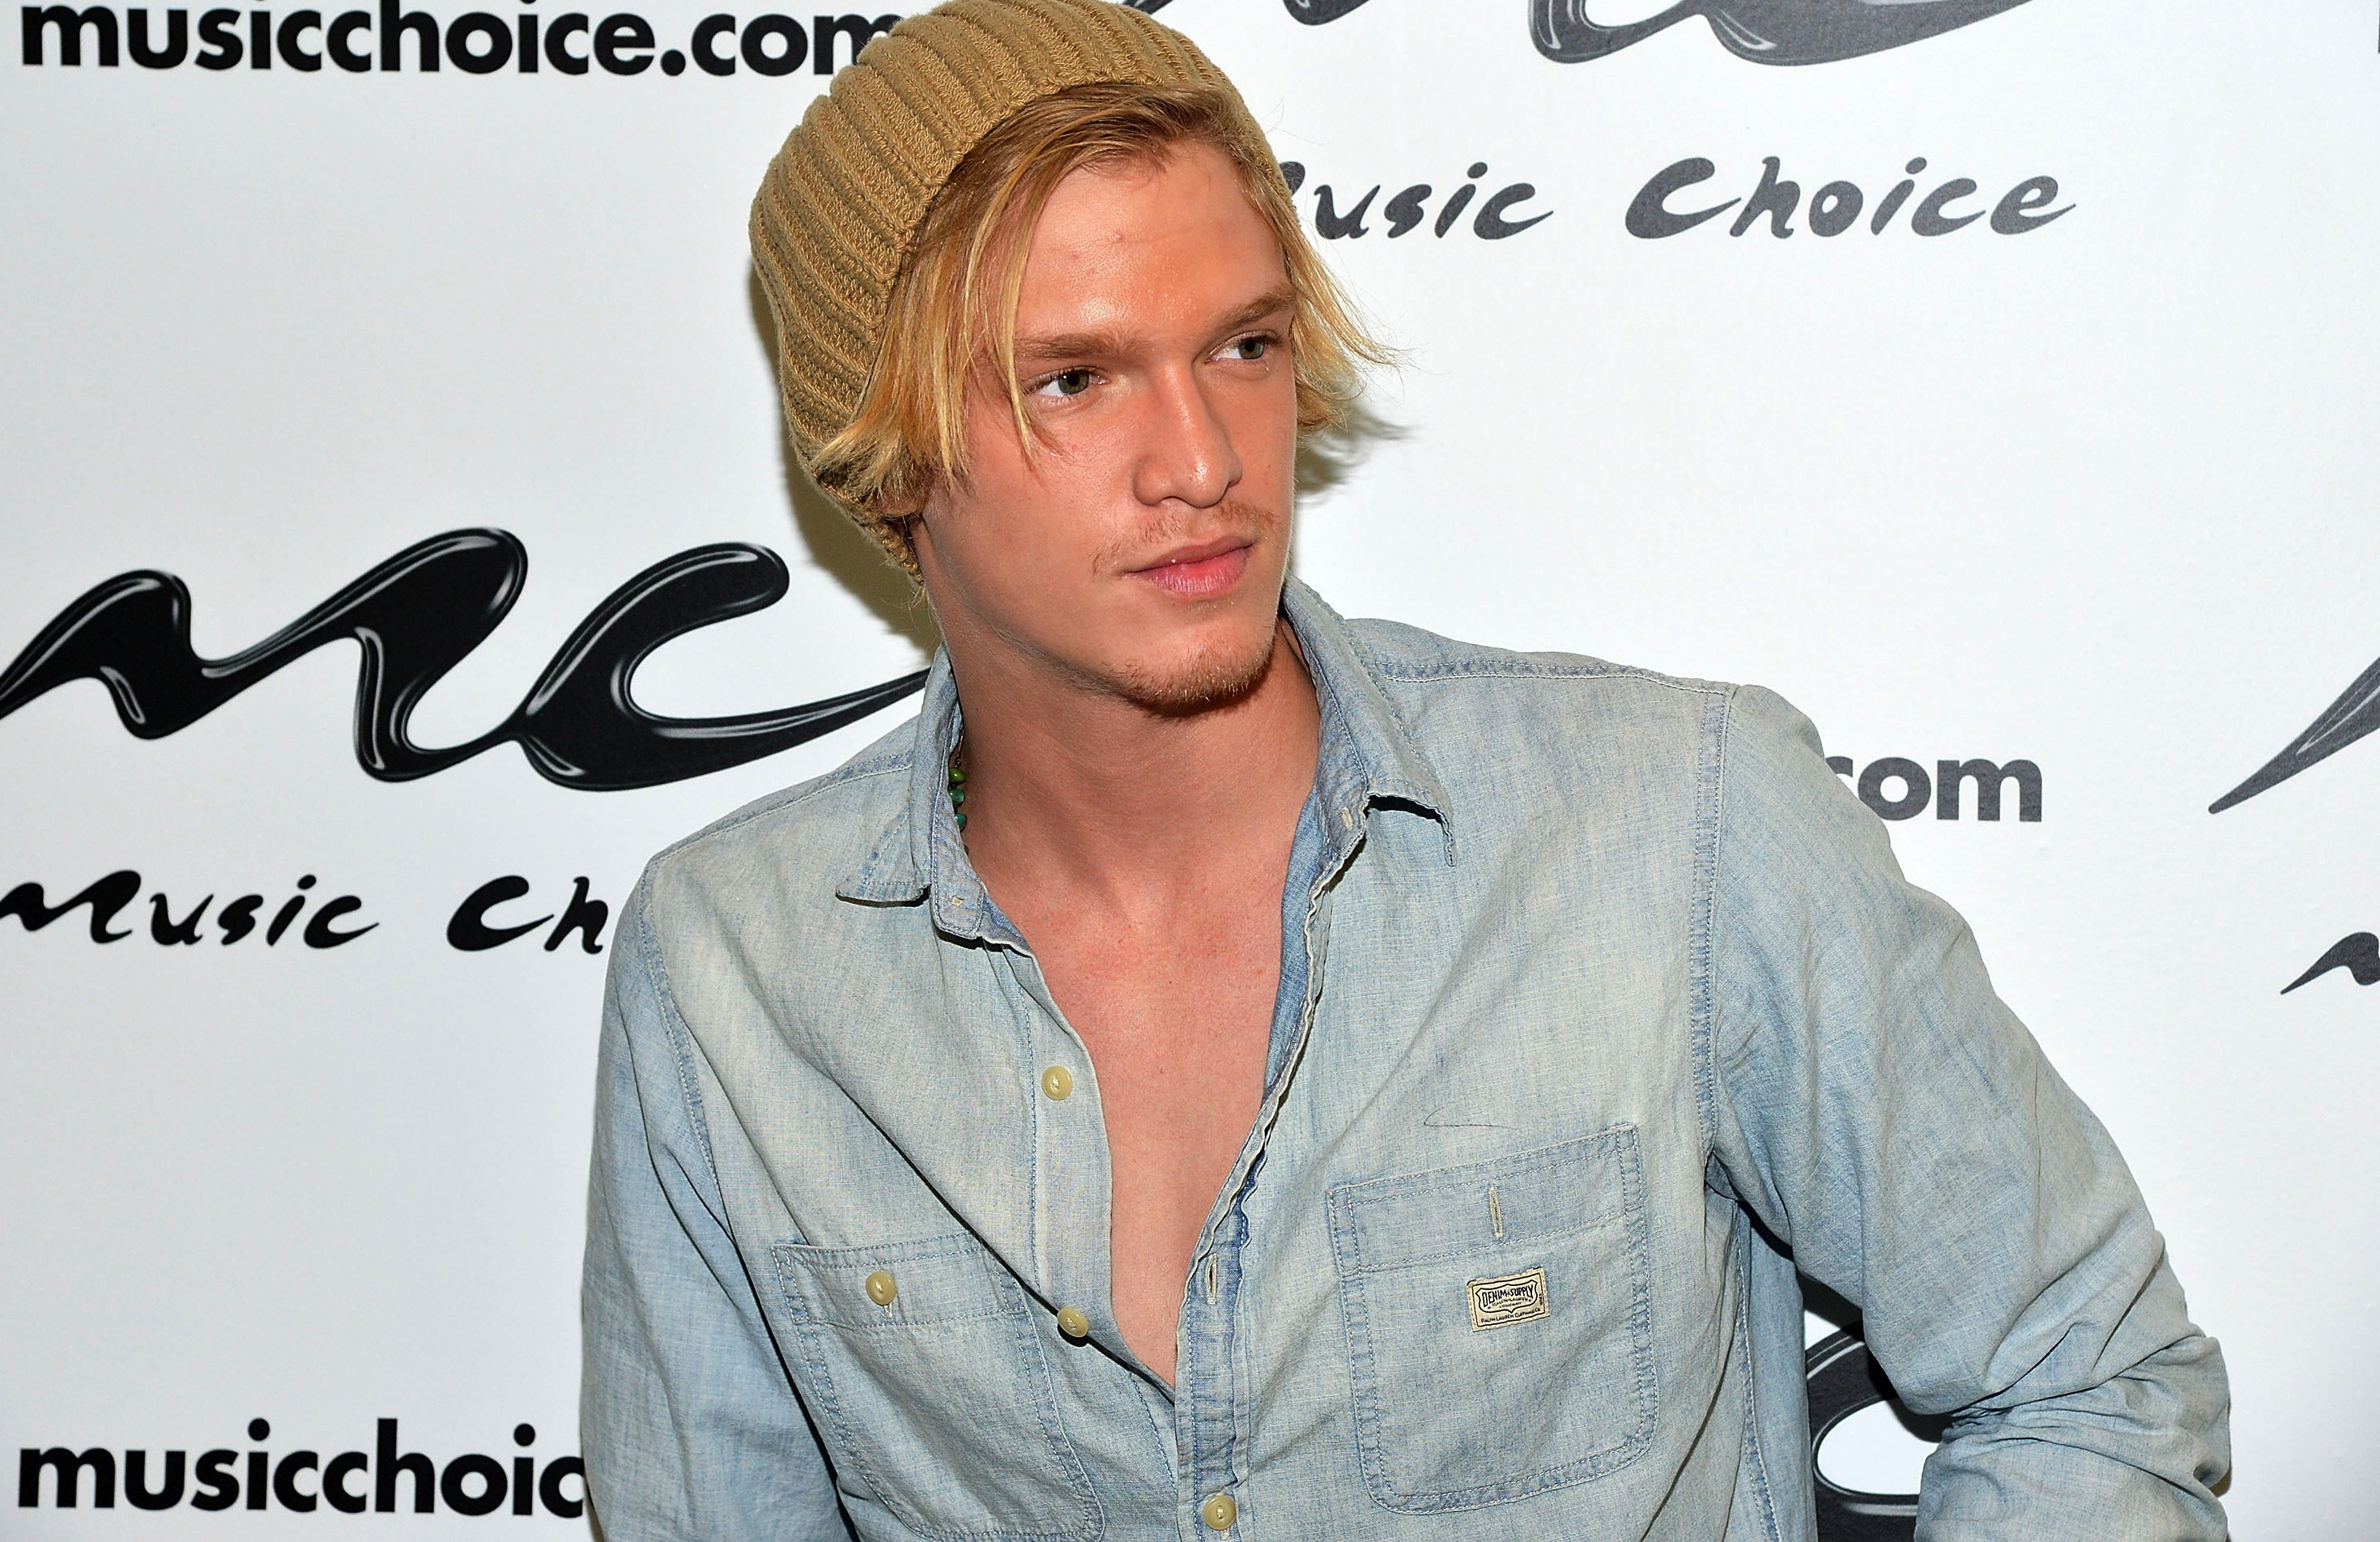 Cody Simpson Hd Wallpaper